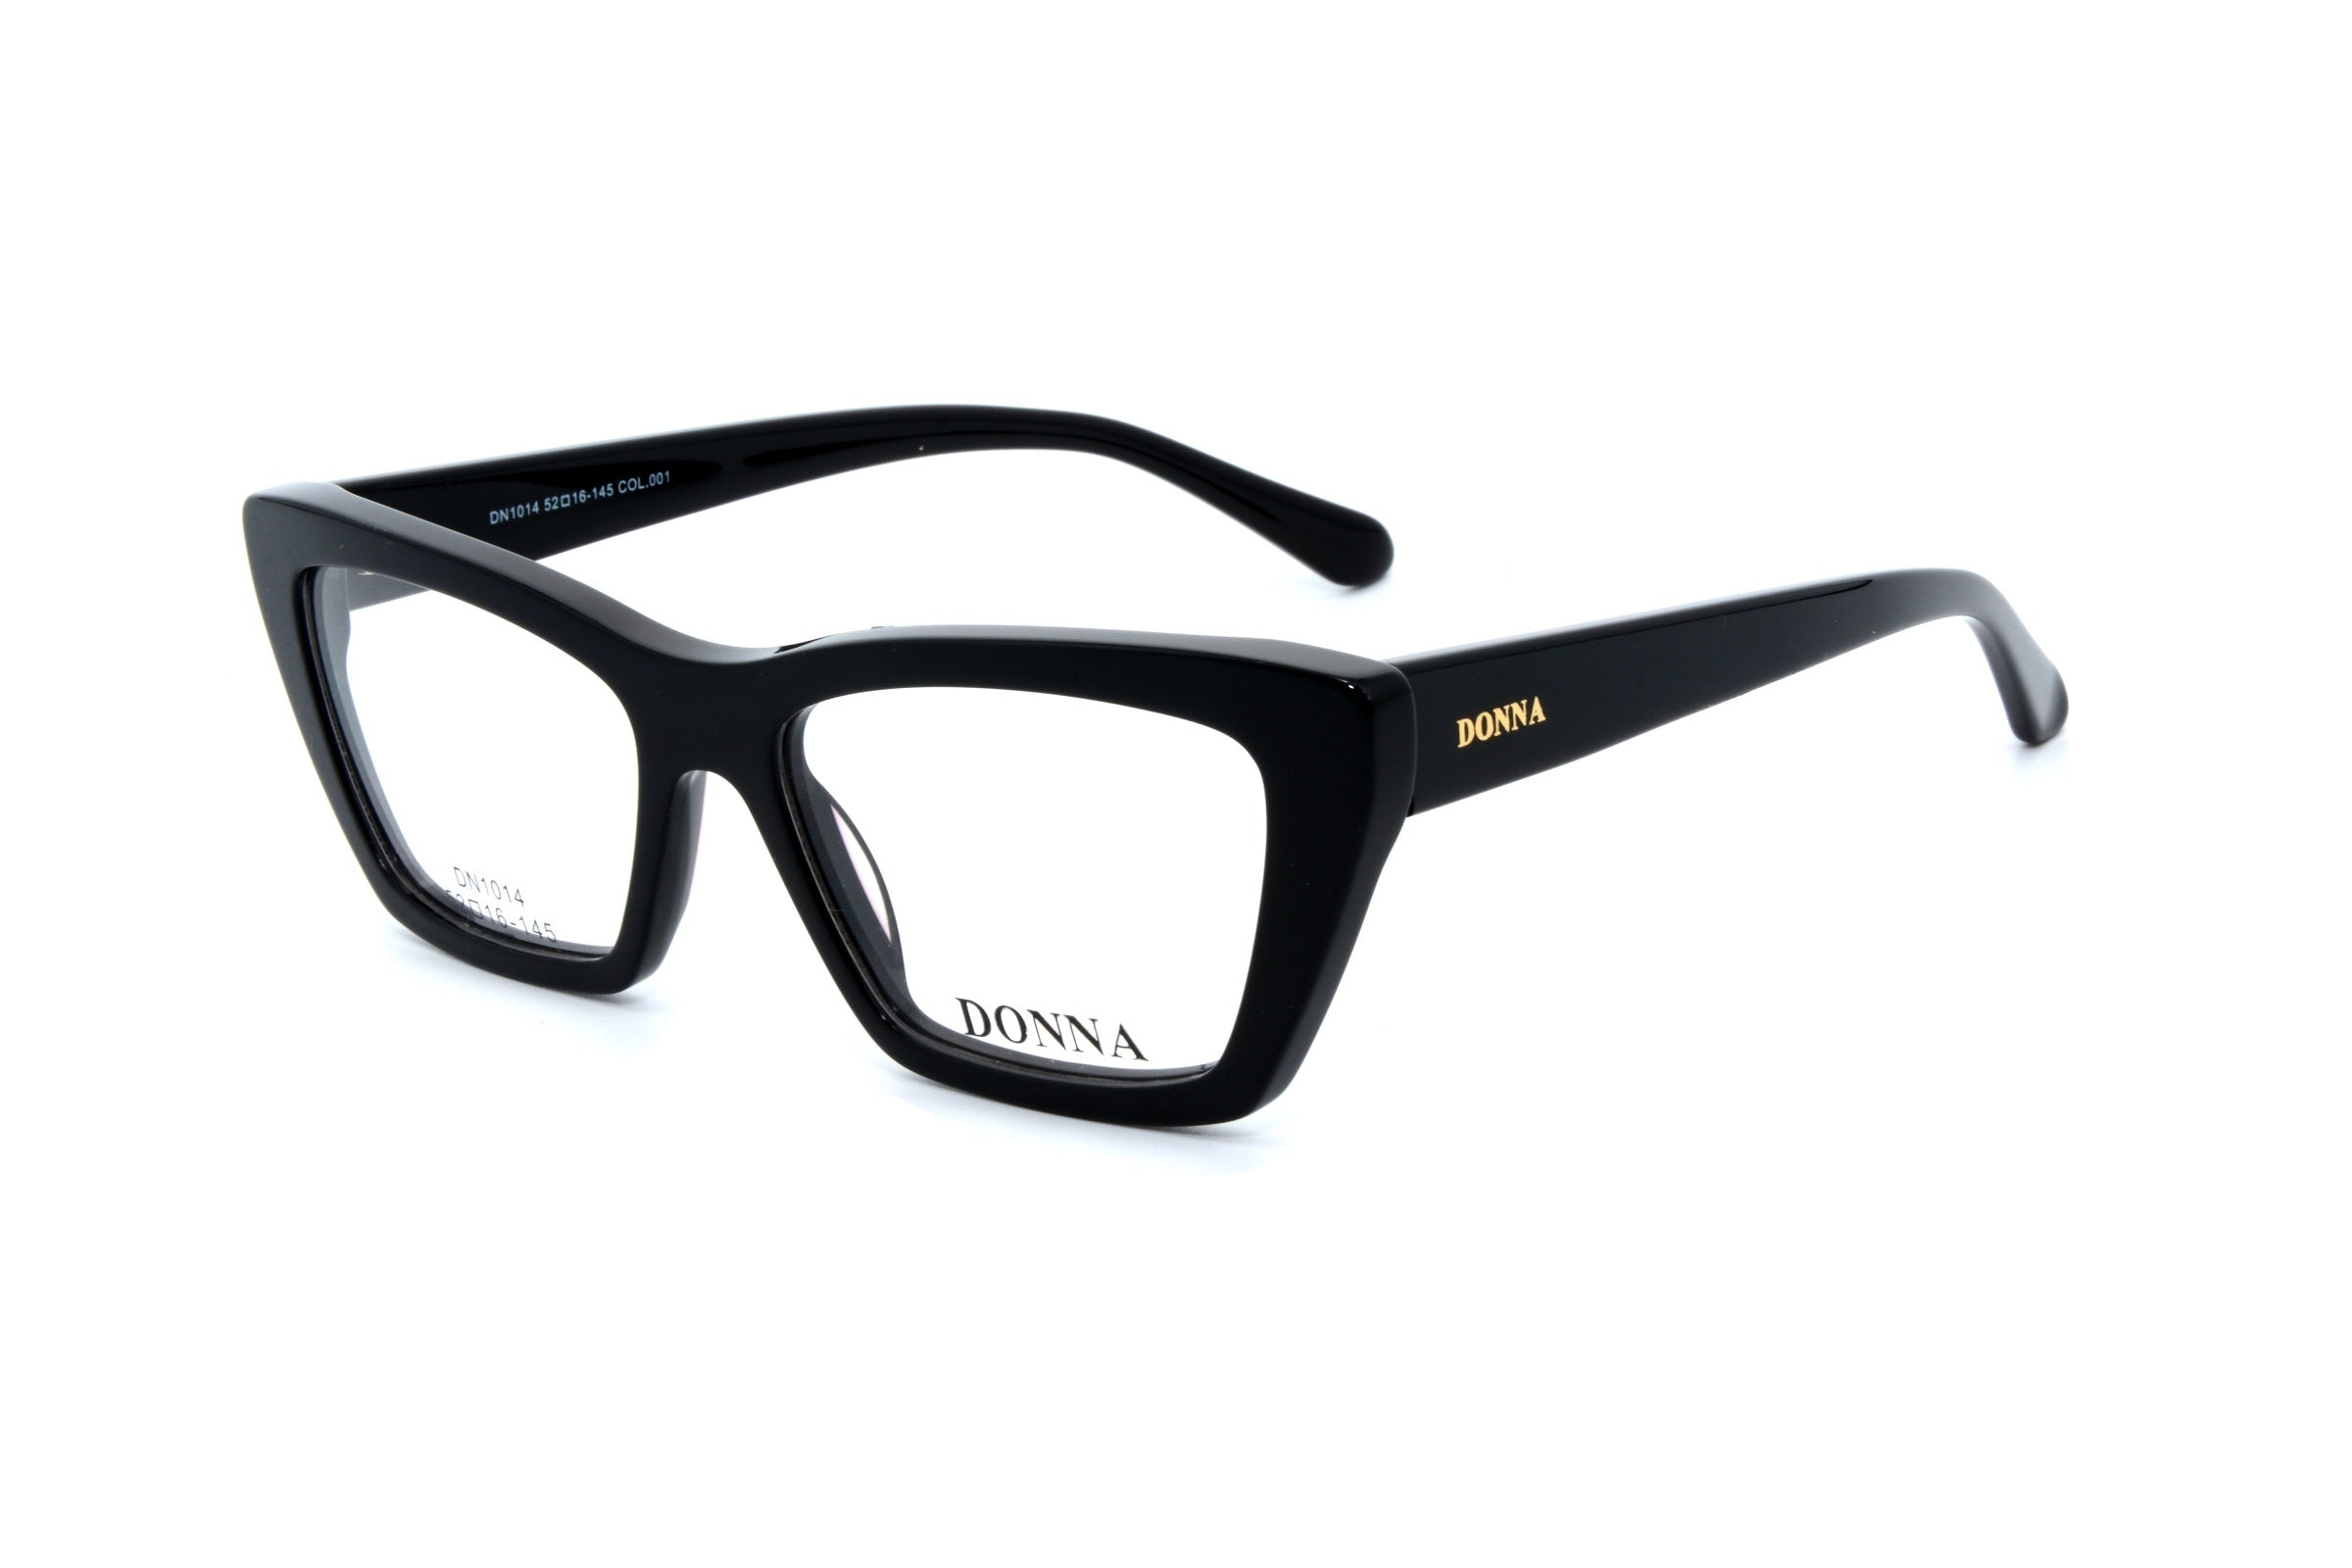 Donna eyewear 1014, C001 - Optics Trading